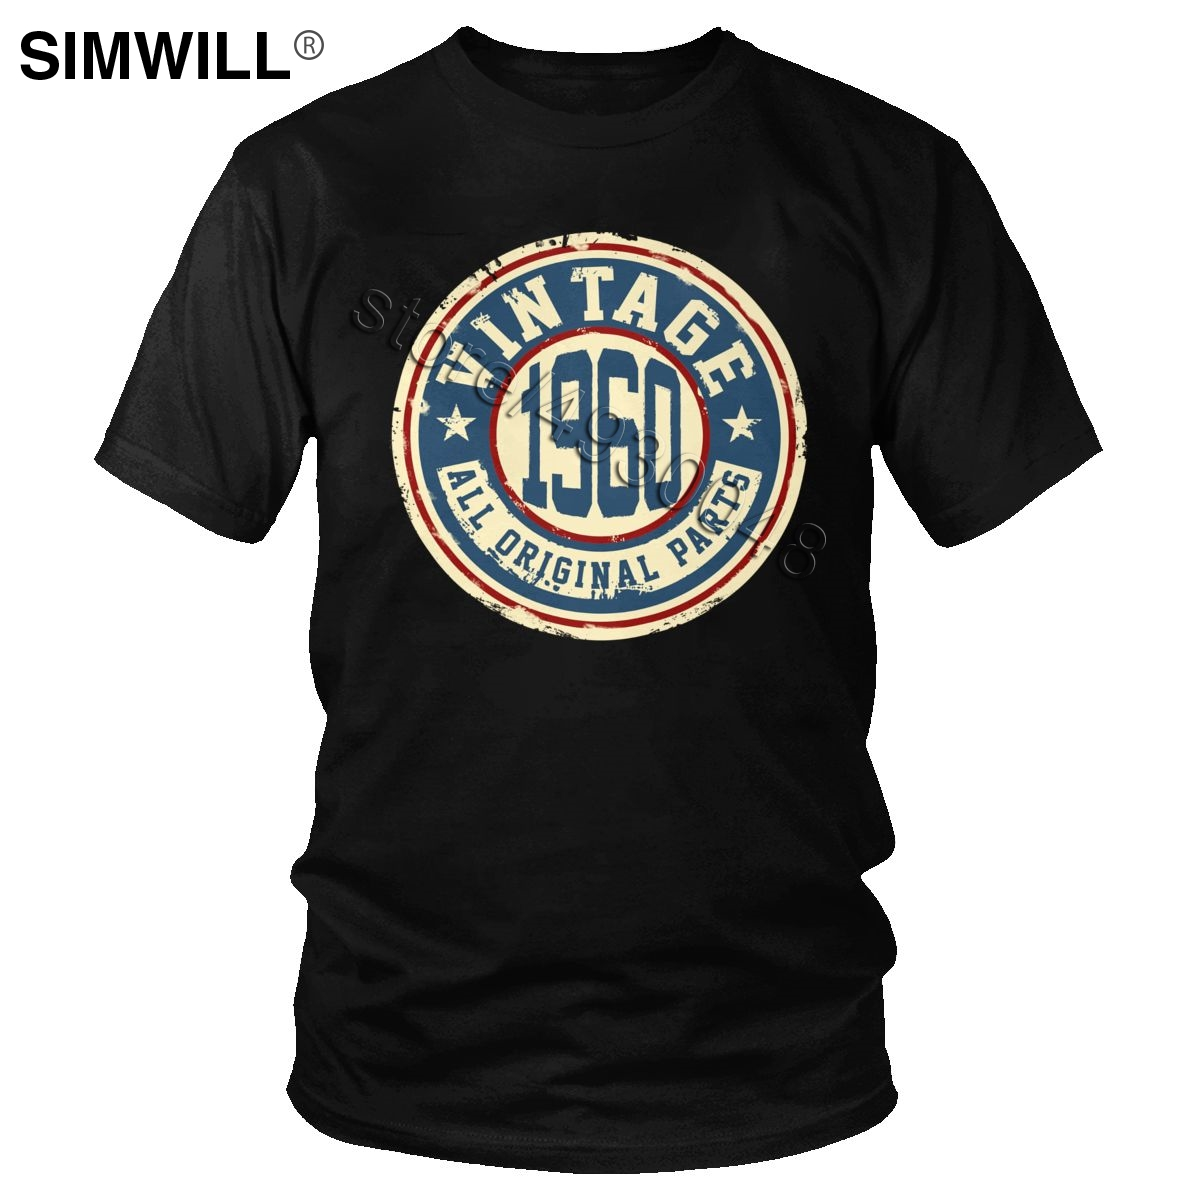 Awesome Cotton Vintage 1960 T Shirt Short Sleeves Born In 60S Tshirt 60th 60 Years Old T-shirt Birthday Gift Anniversary Tops